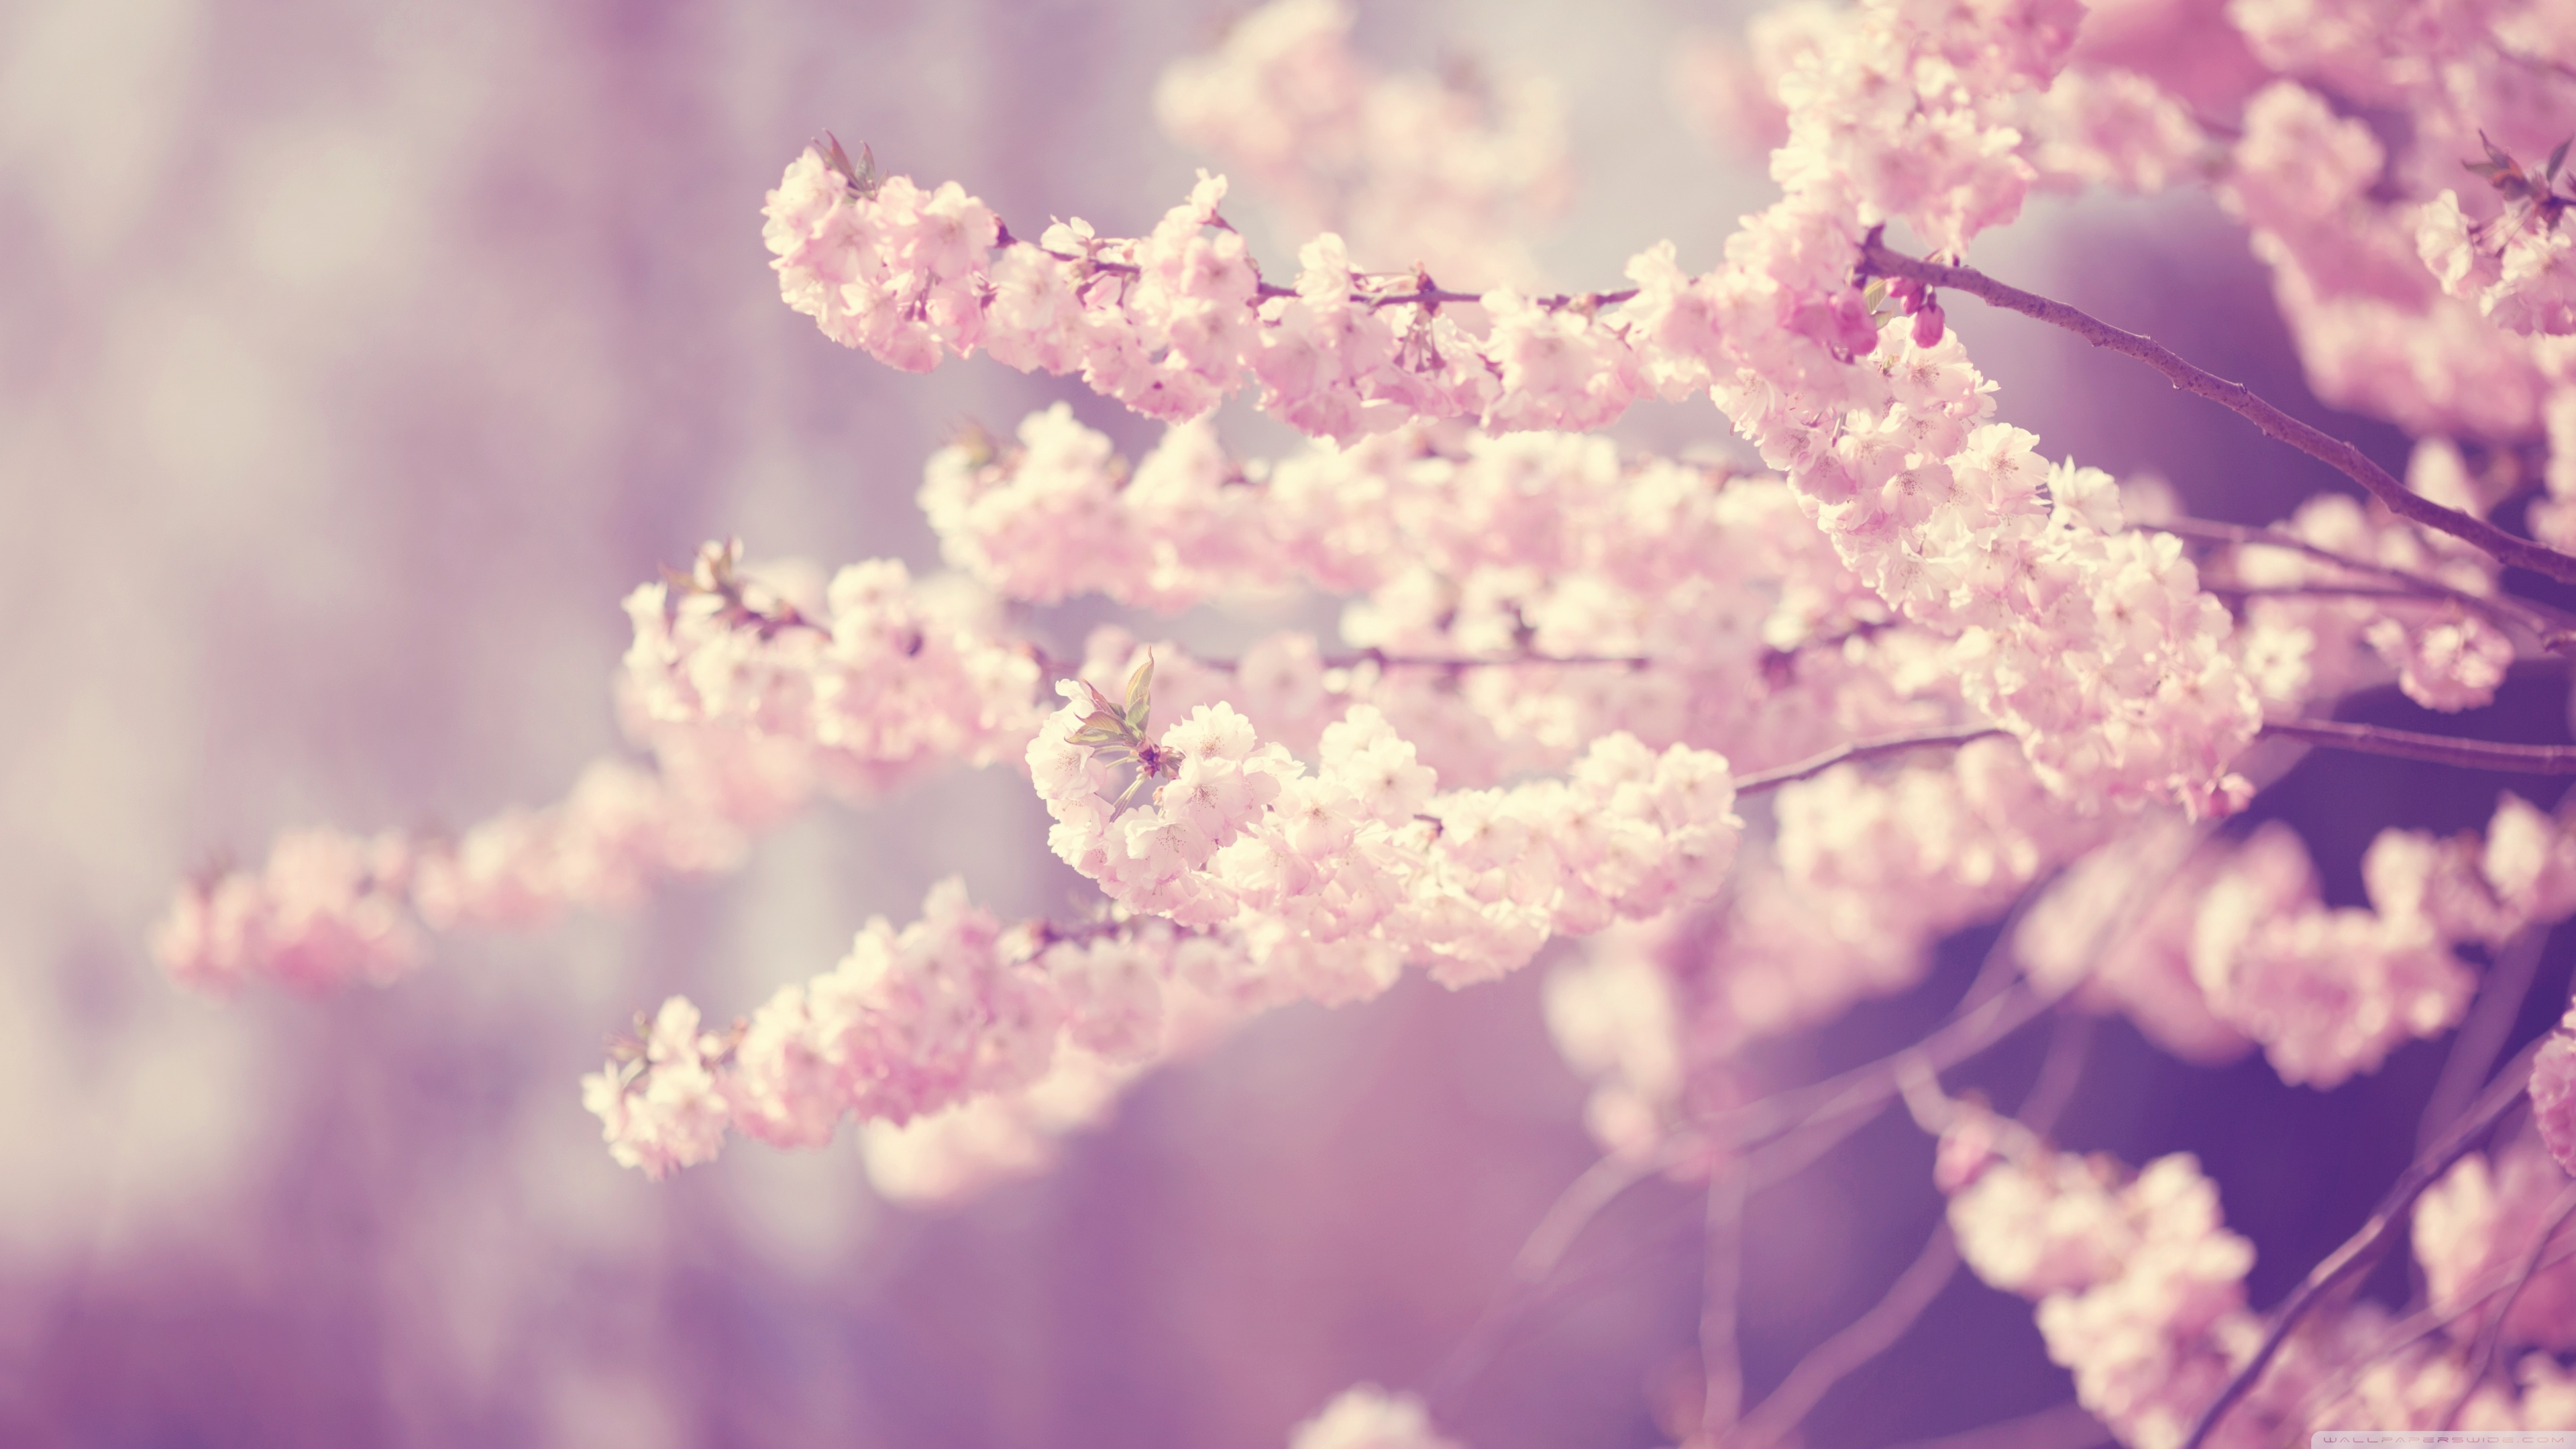 Fullsize Of Cherry Blossom Wallpaper